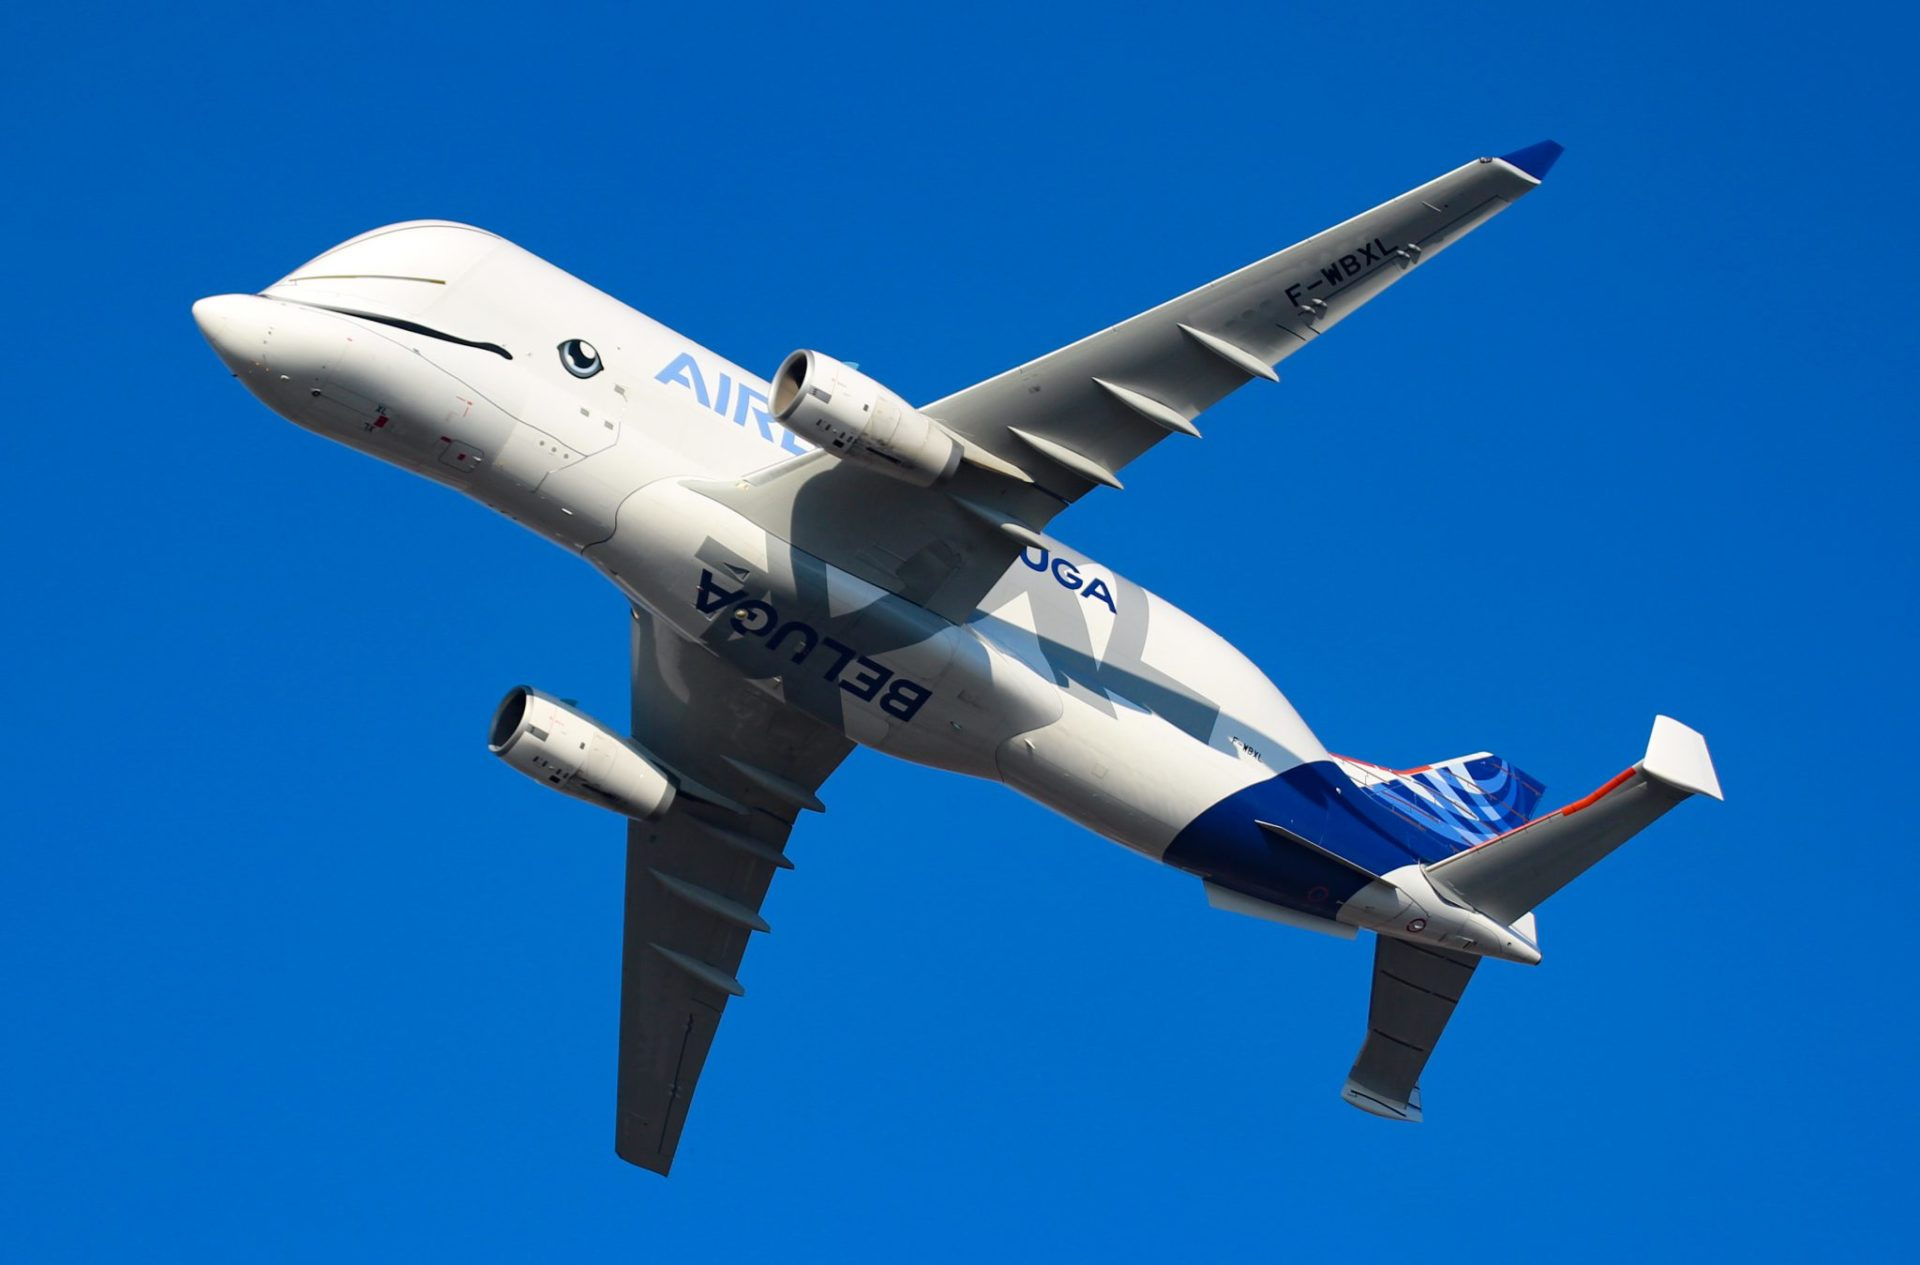 The BelugaXL showing off its whale characteristics (Image: Aviation Media Co.)